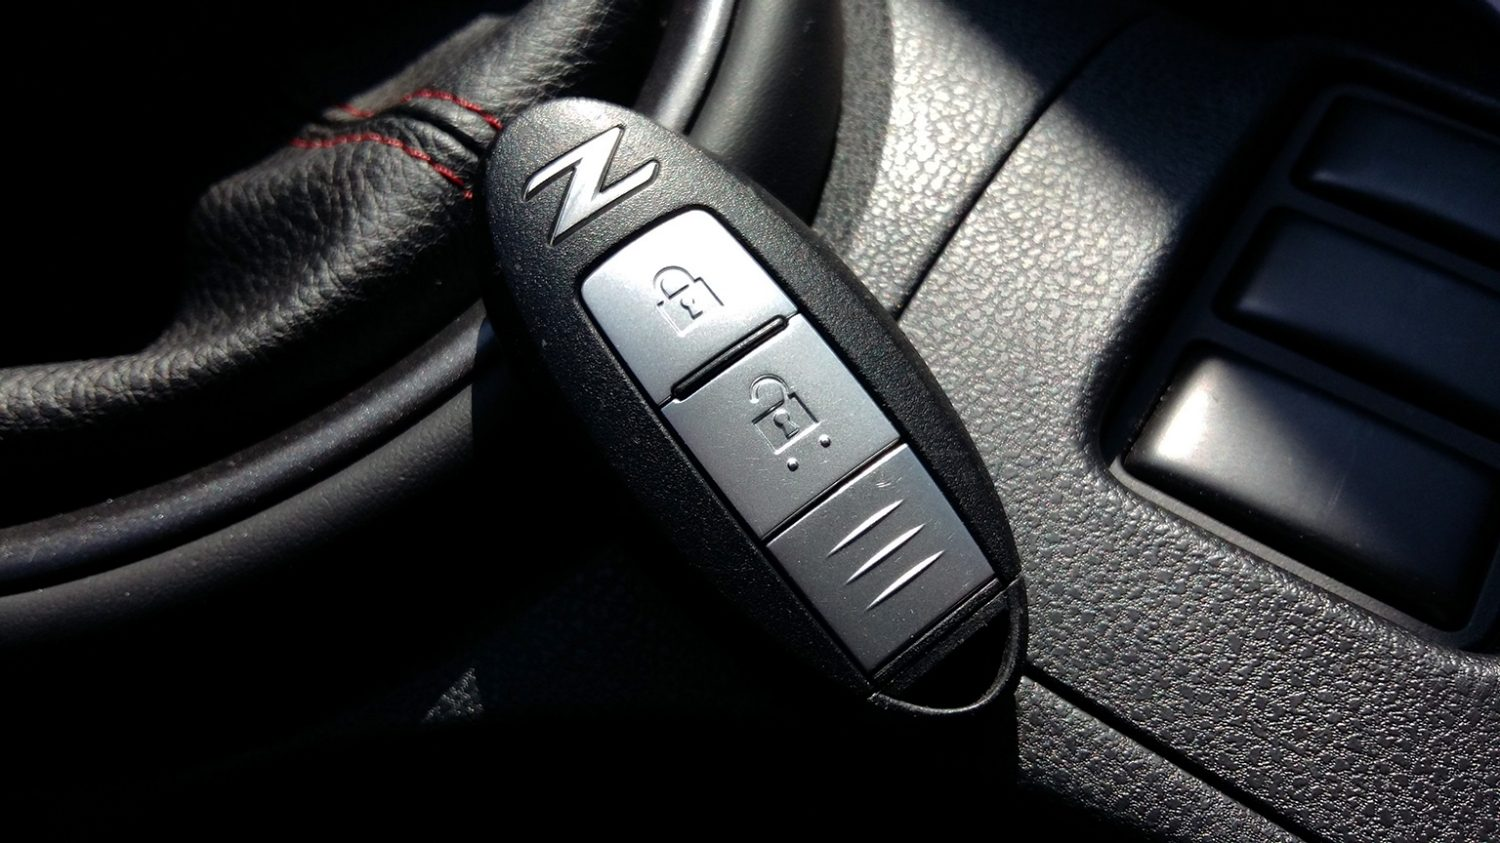 NISSAN 370Z COUPE – NISSAN Intelligent Key